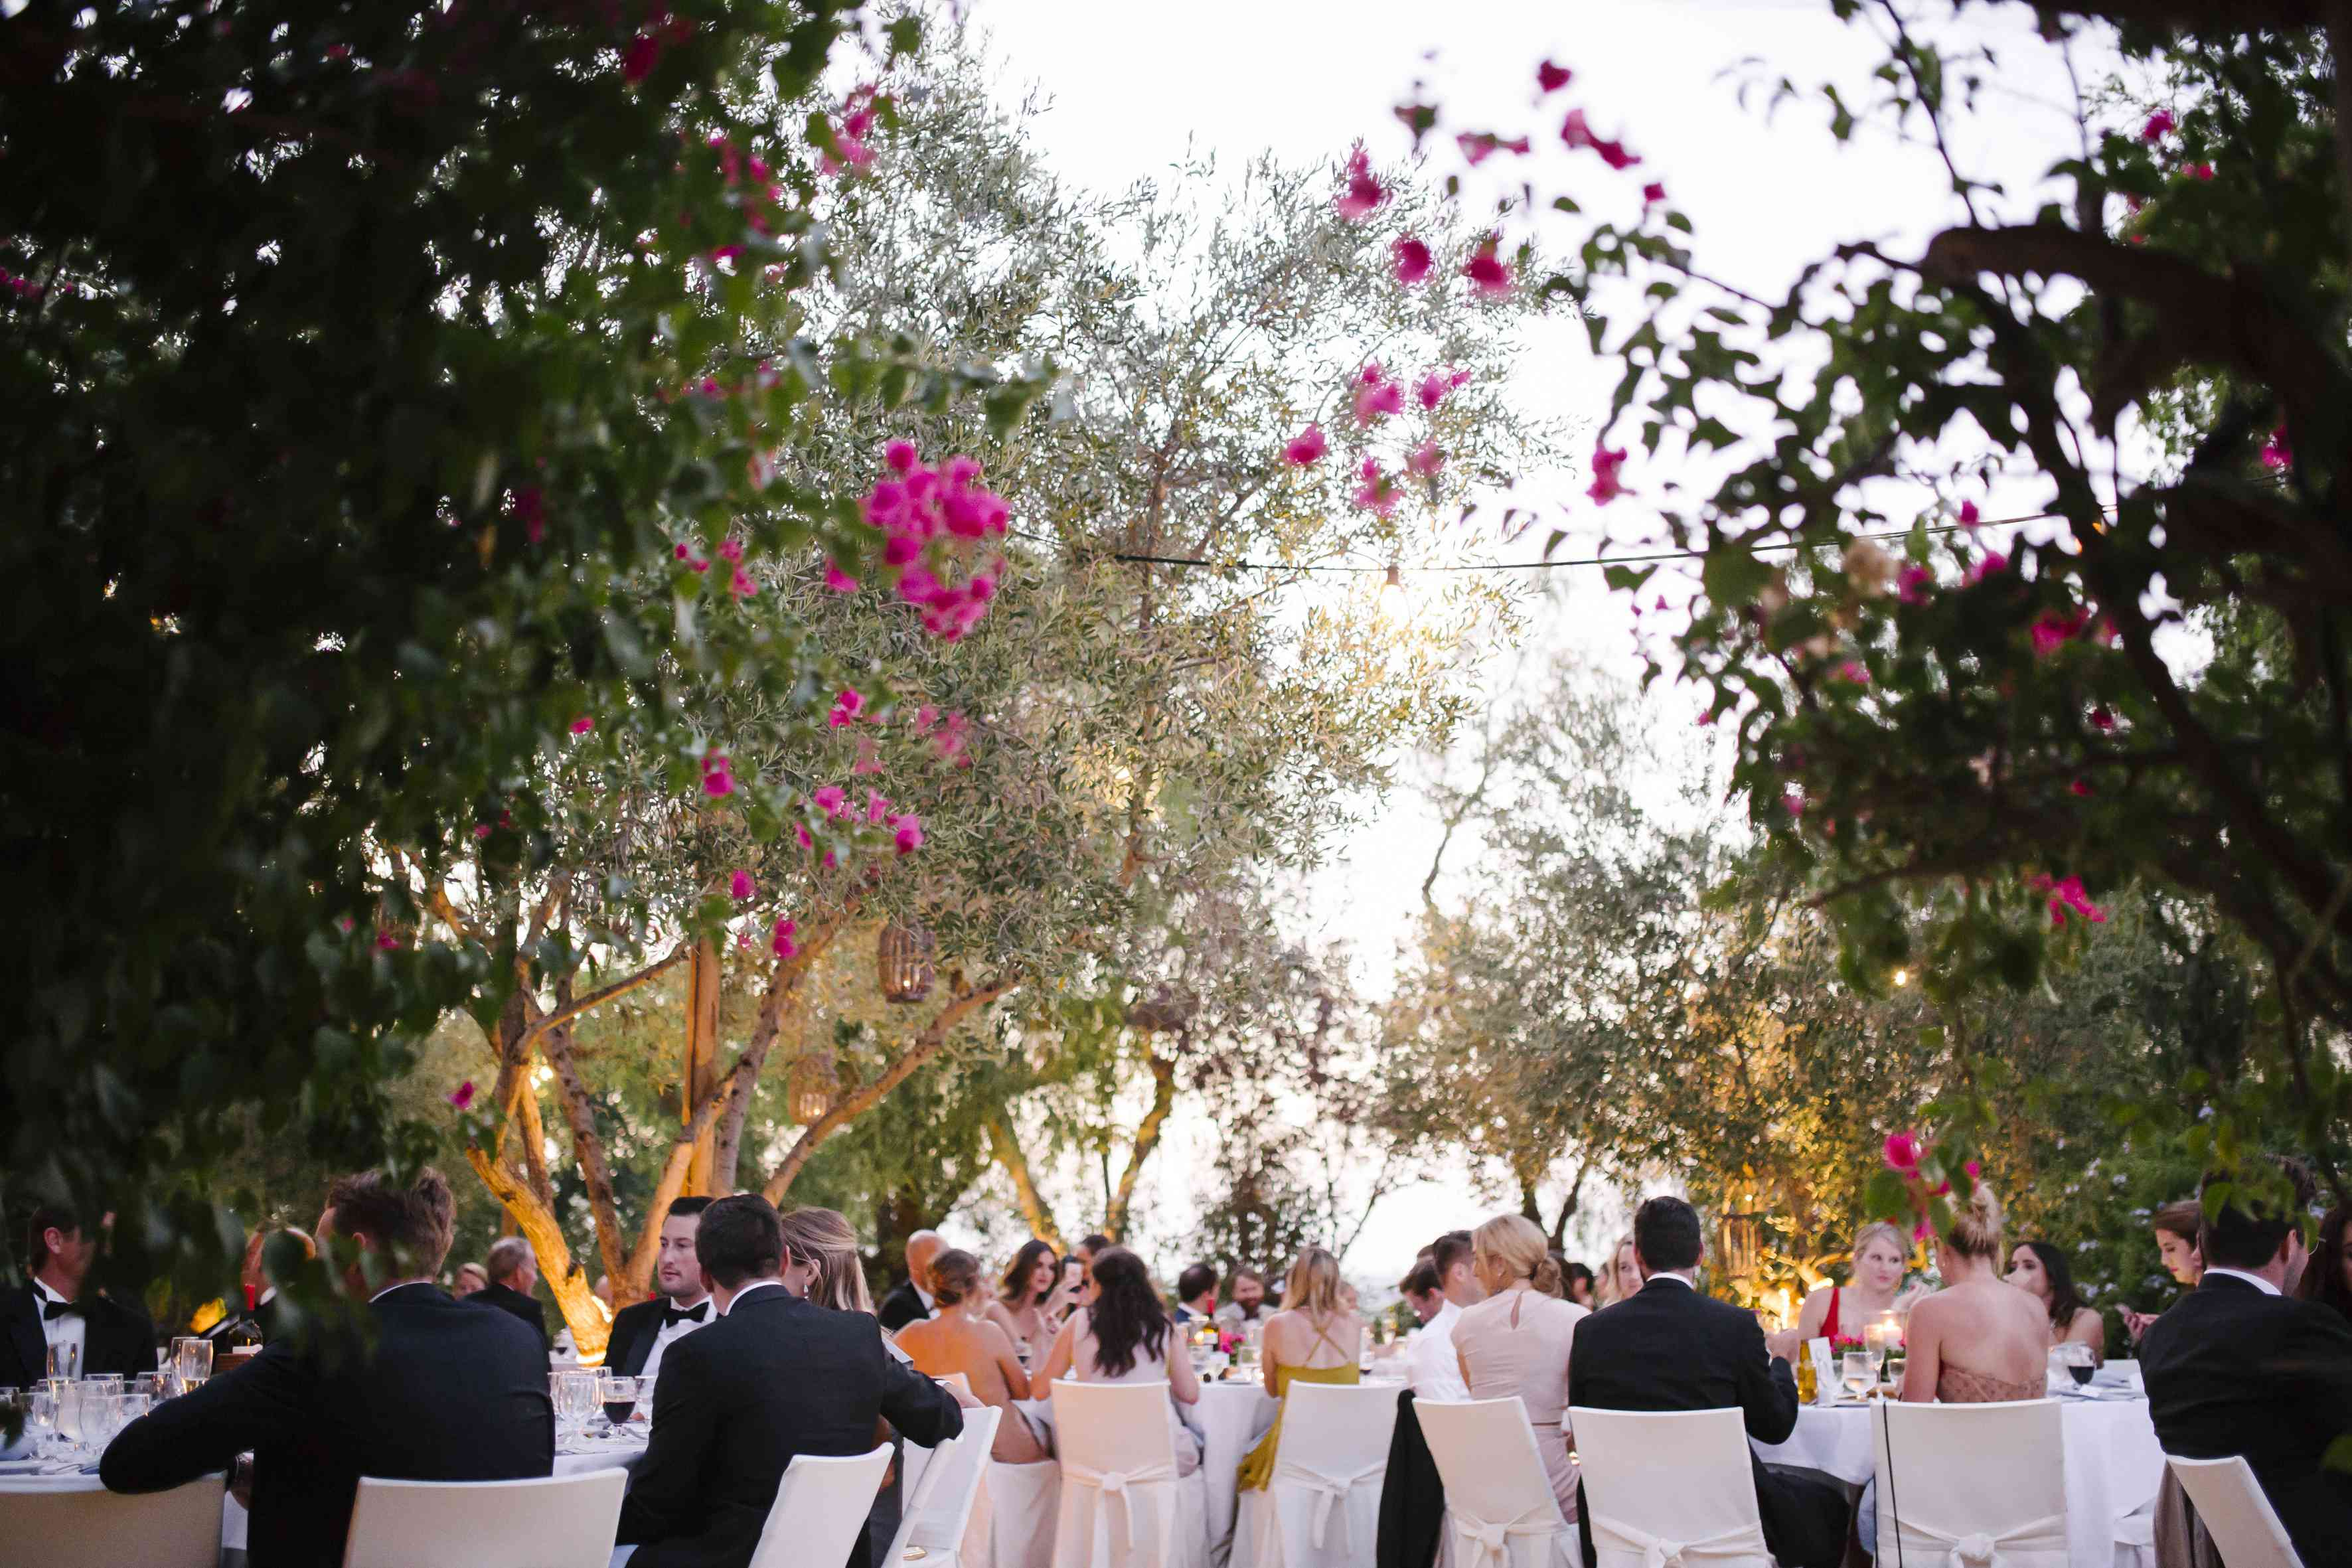 Guests throwing flowers